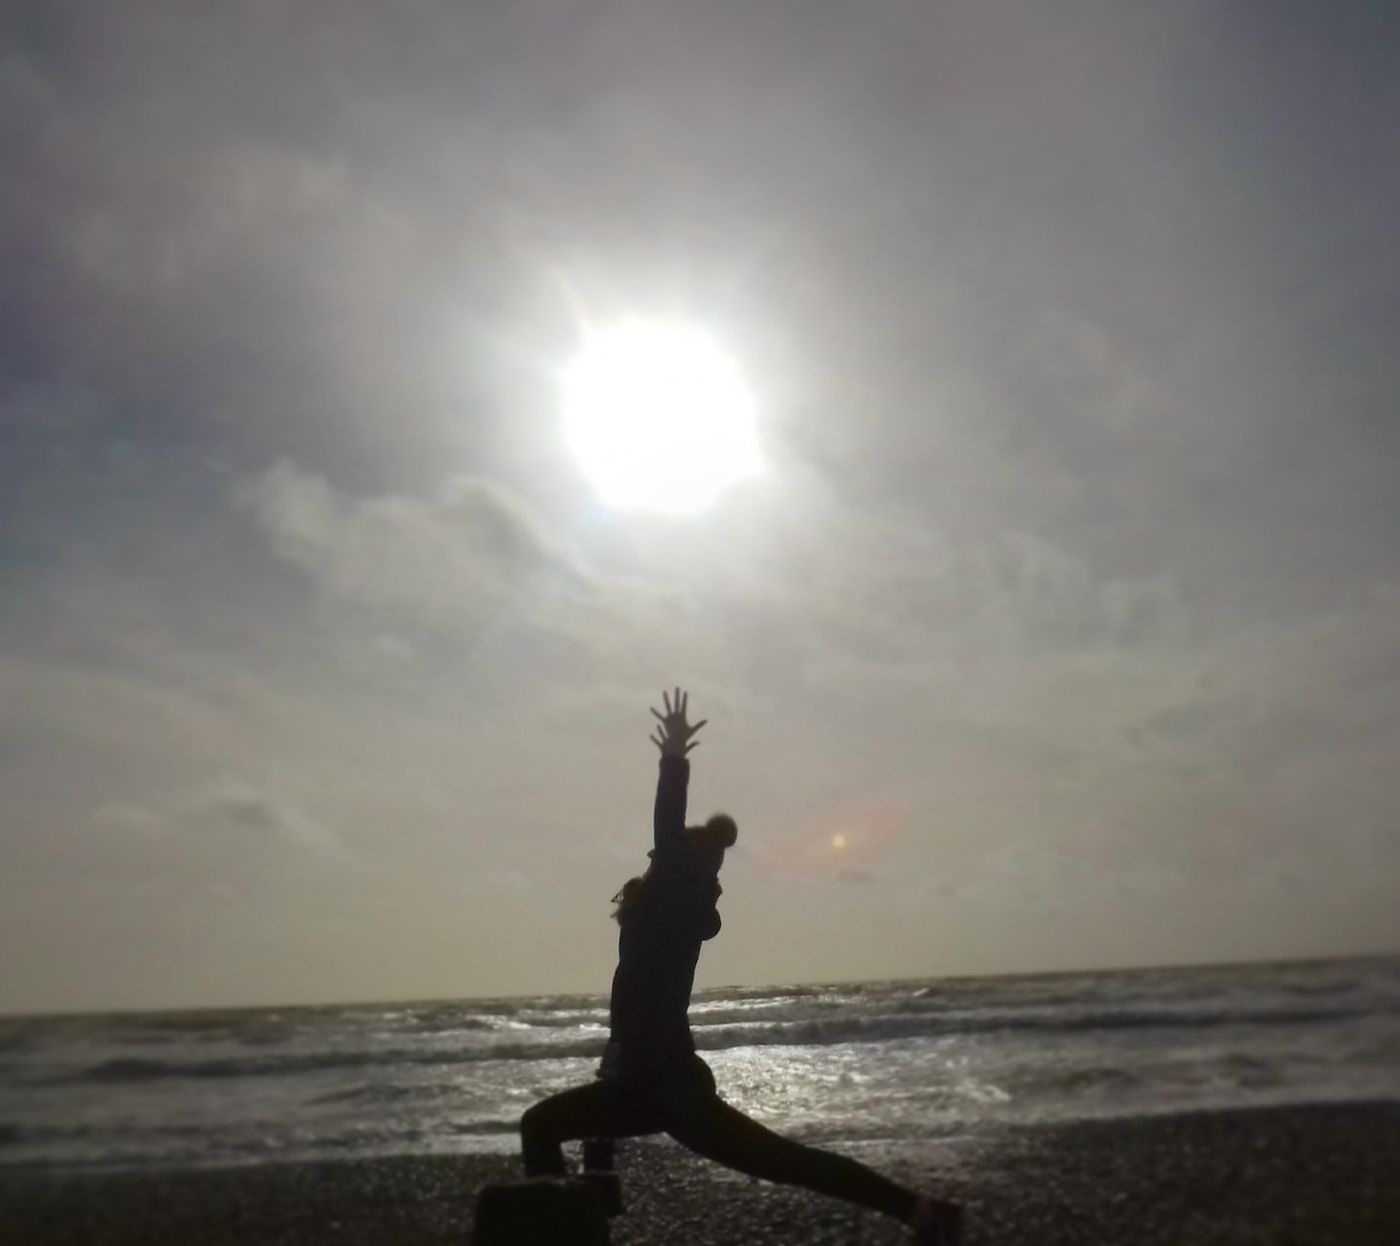 The days may be getting colder, but outdoor yoga is still wonderful if you wrap up warm and get the blood pumping with some rapid sun salutations!